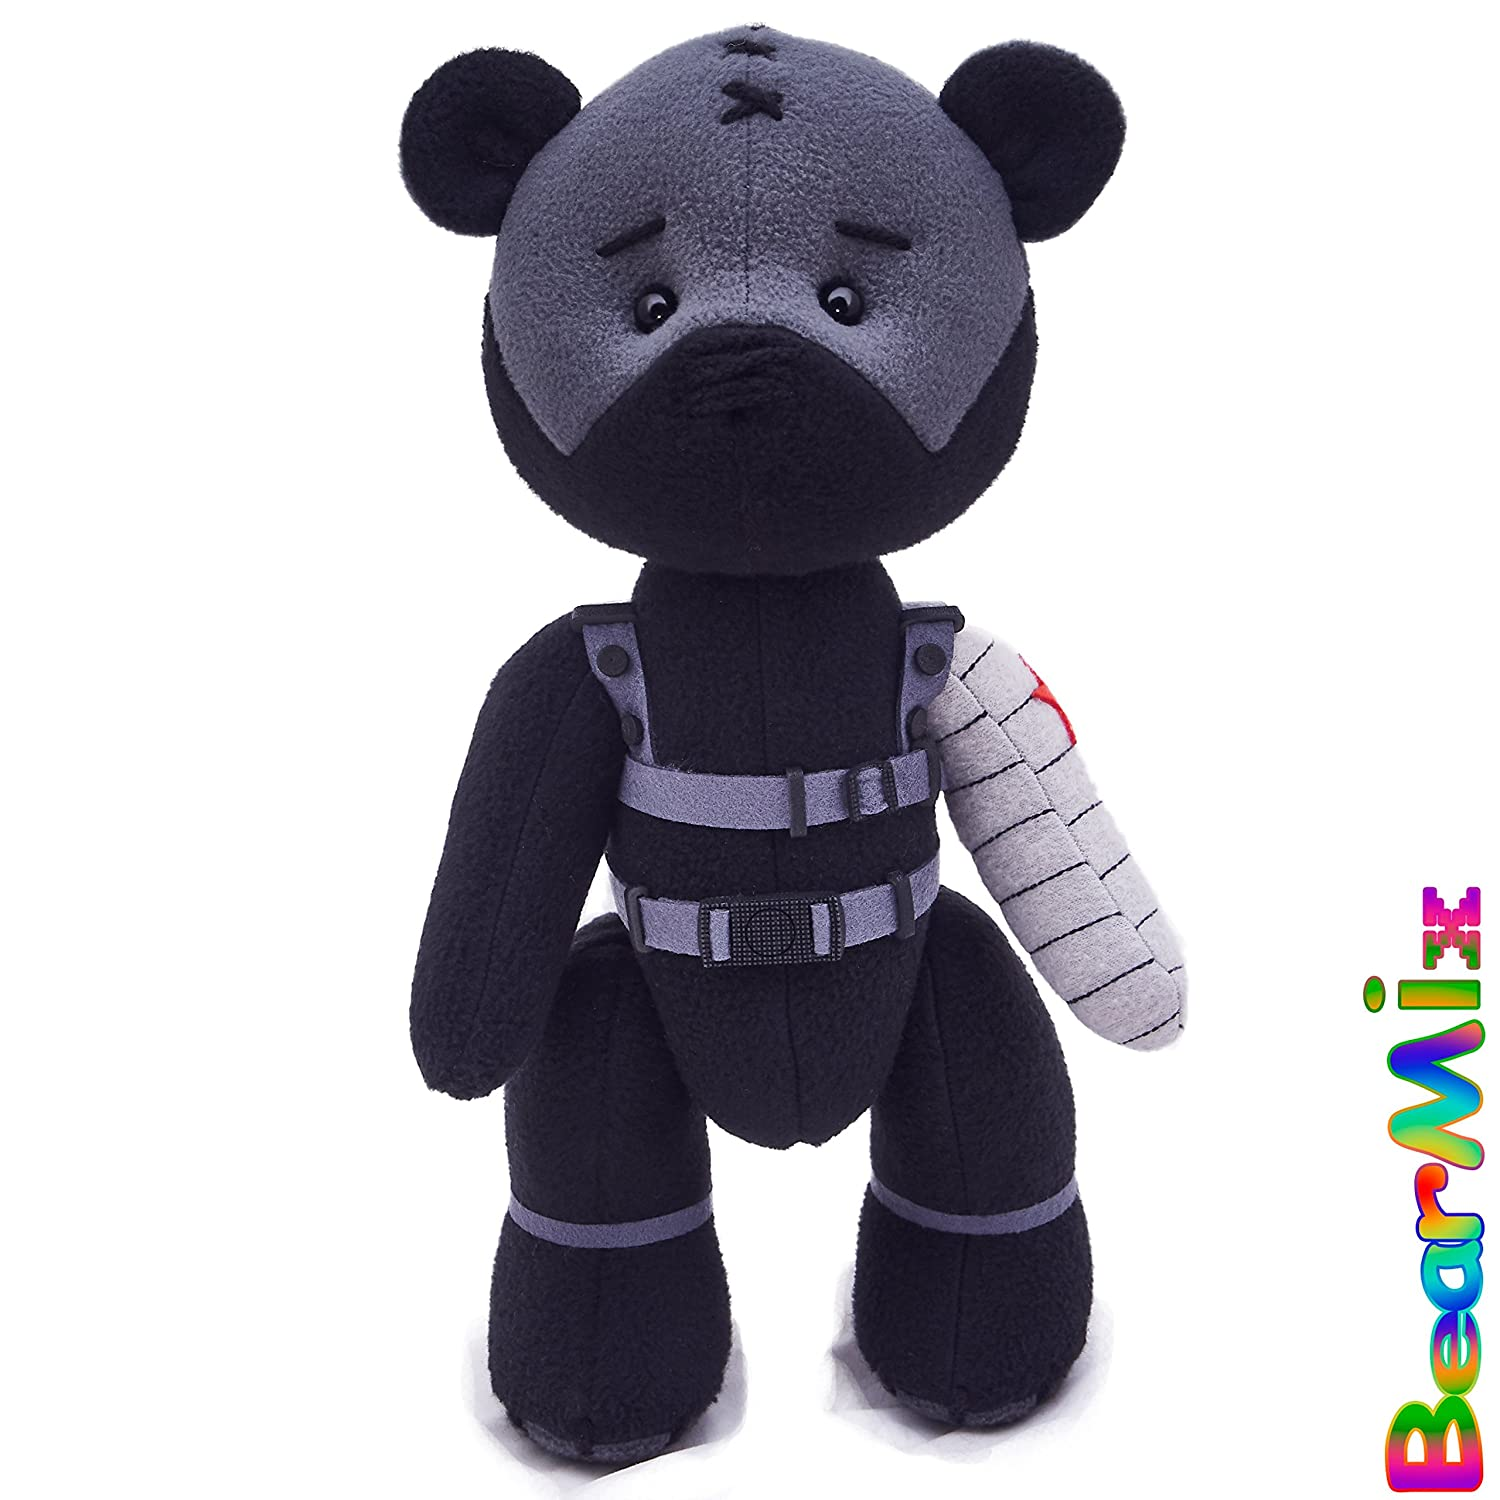 Bucky Winter Soldier bear - marvel superhero movie comic plush toy avengers bucky barnes